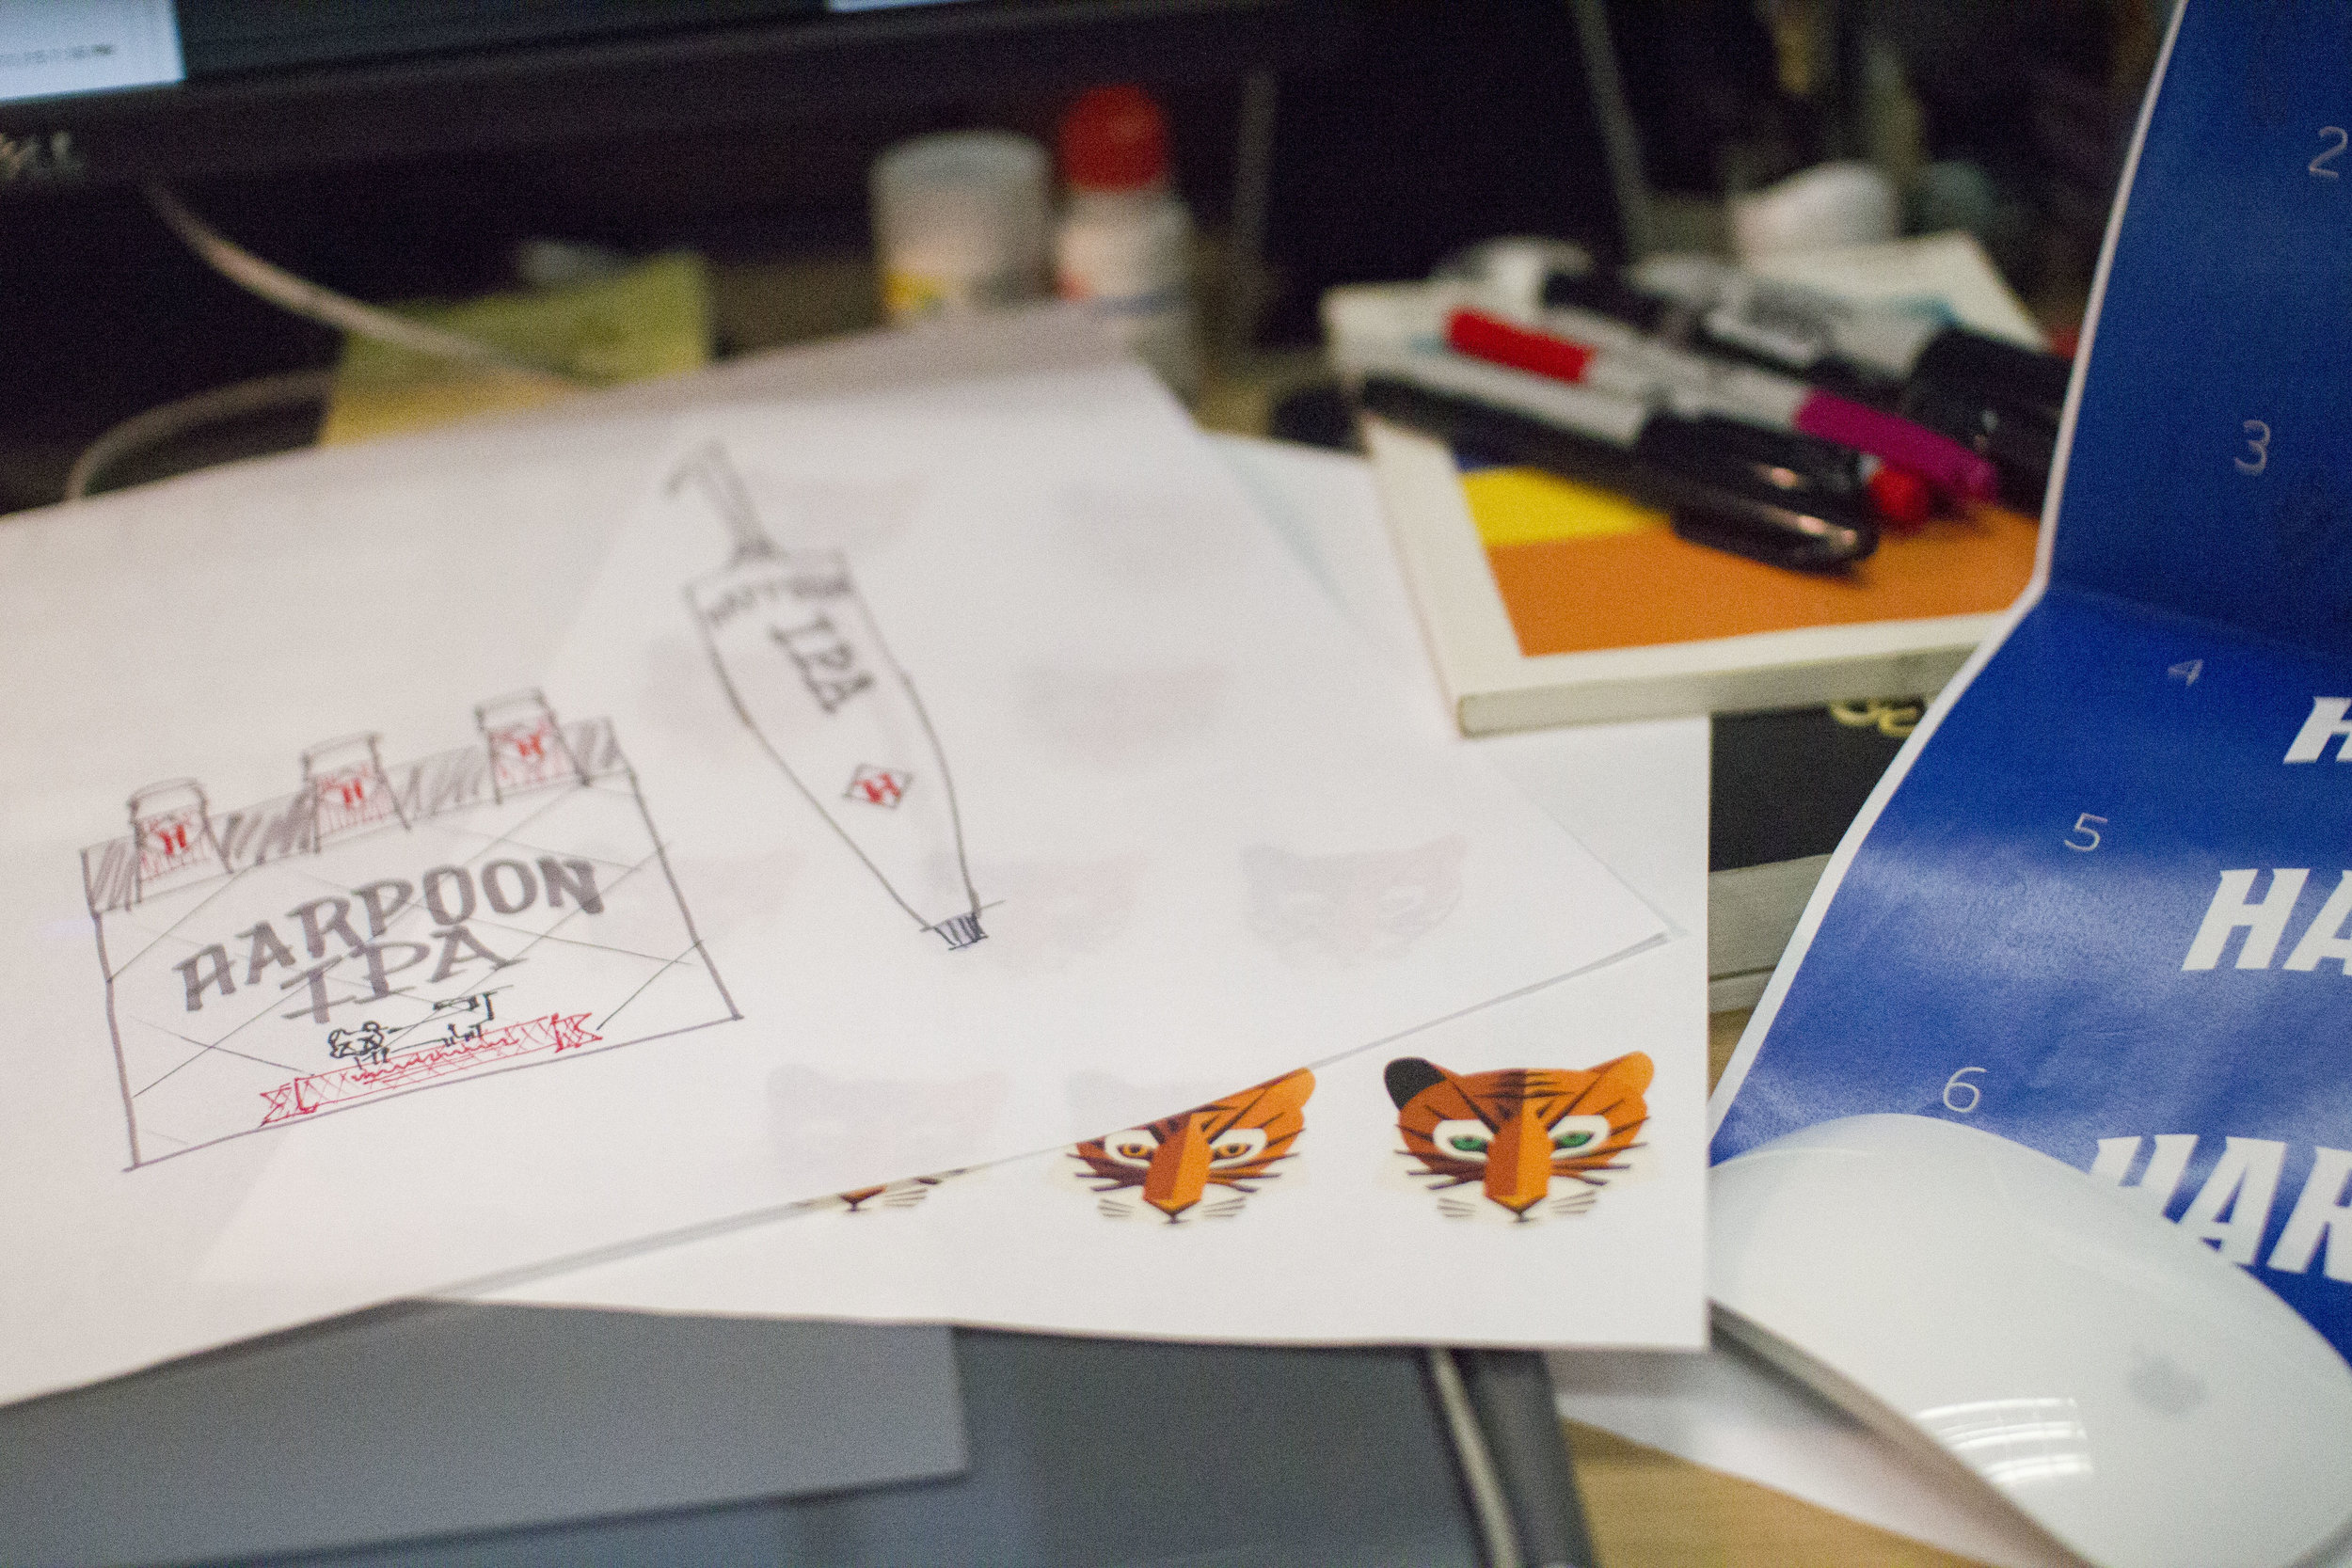 """Harpoon """"IPA"""" tiger icon design and package details. Photo courtesy of Harpoon Brewery."""